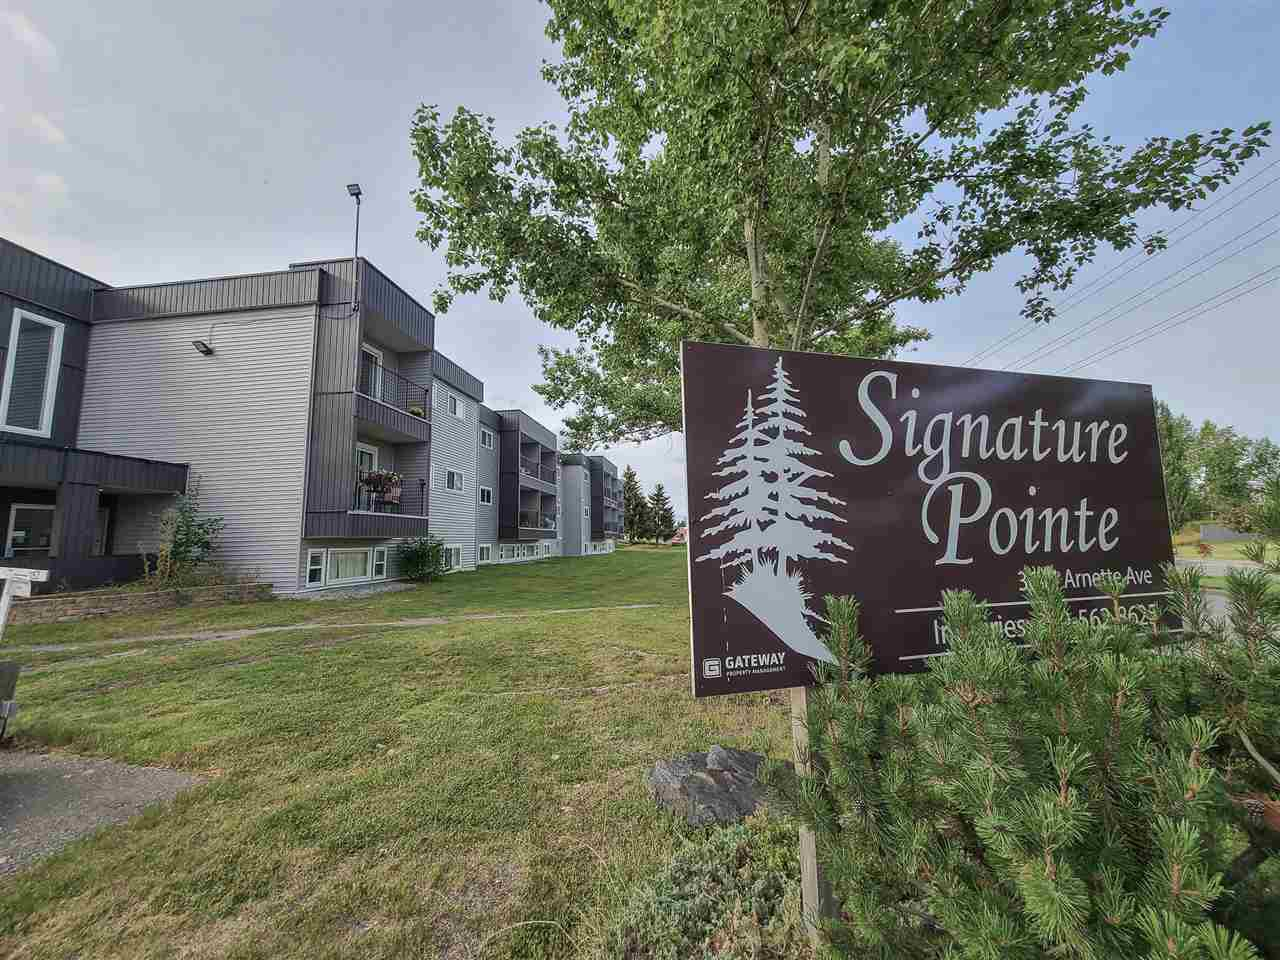 """Main Photo: 308 3644 ARNETT Avenue in Prince George: Pinecone Condo for sale in """"PINEWOOD"""" (PG City West (Zone 71))  : MLS®# R2496464"""